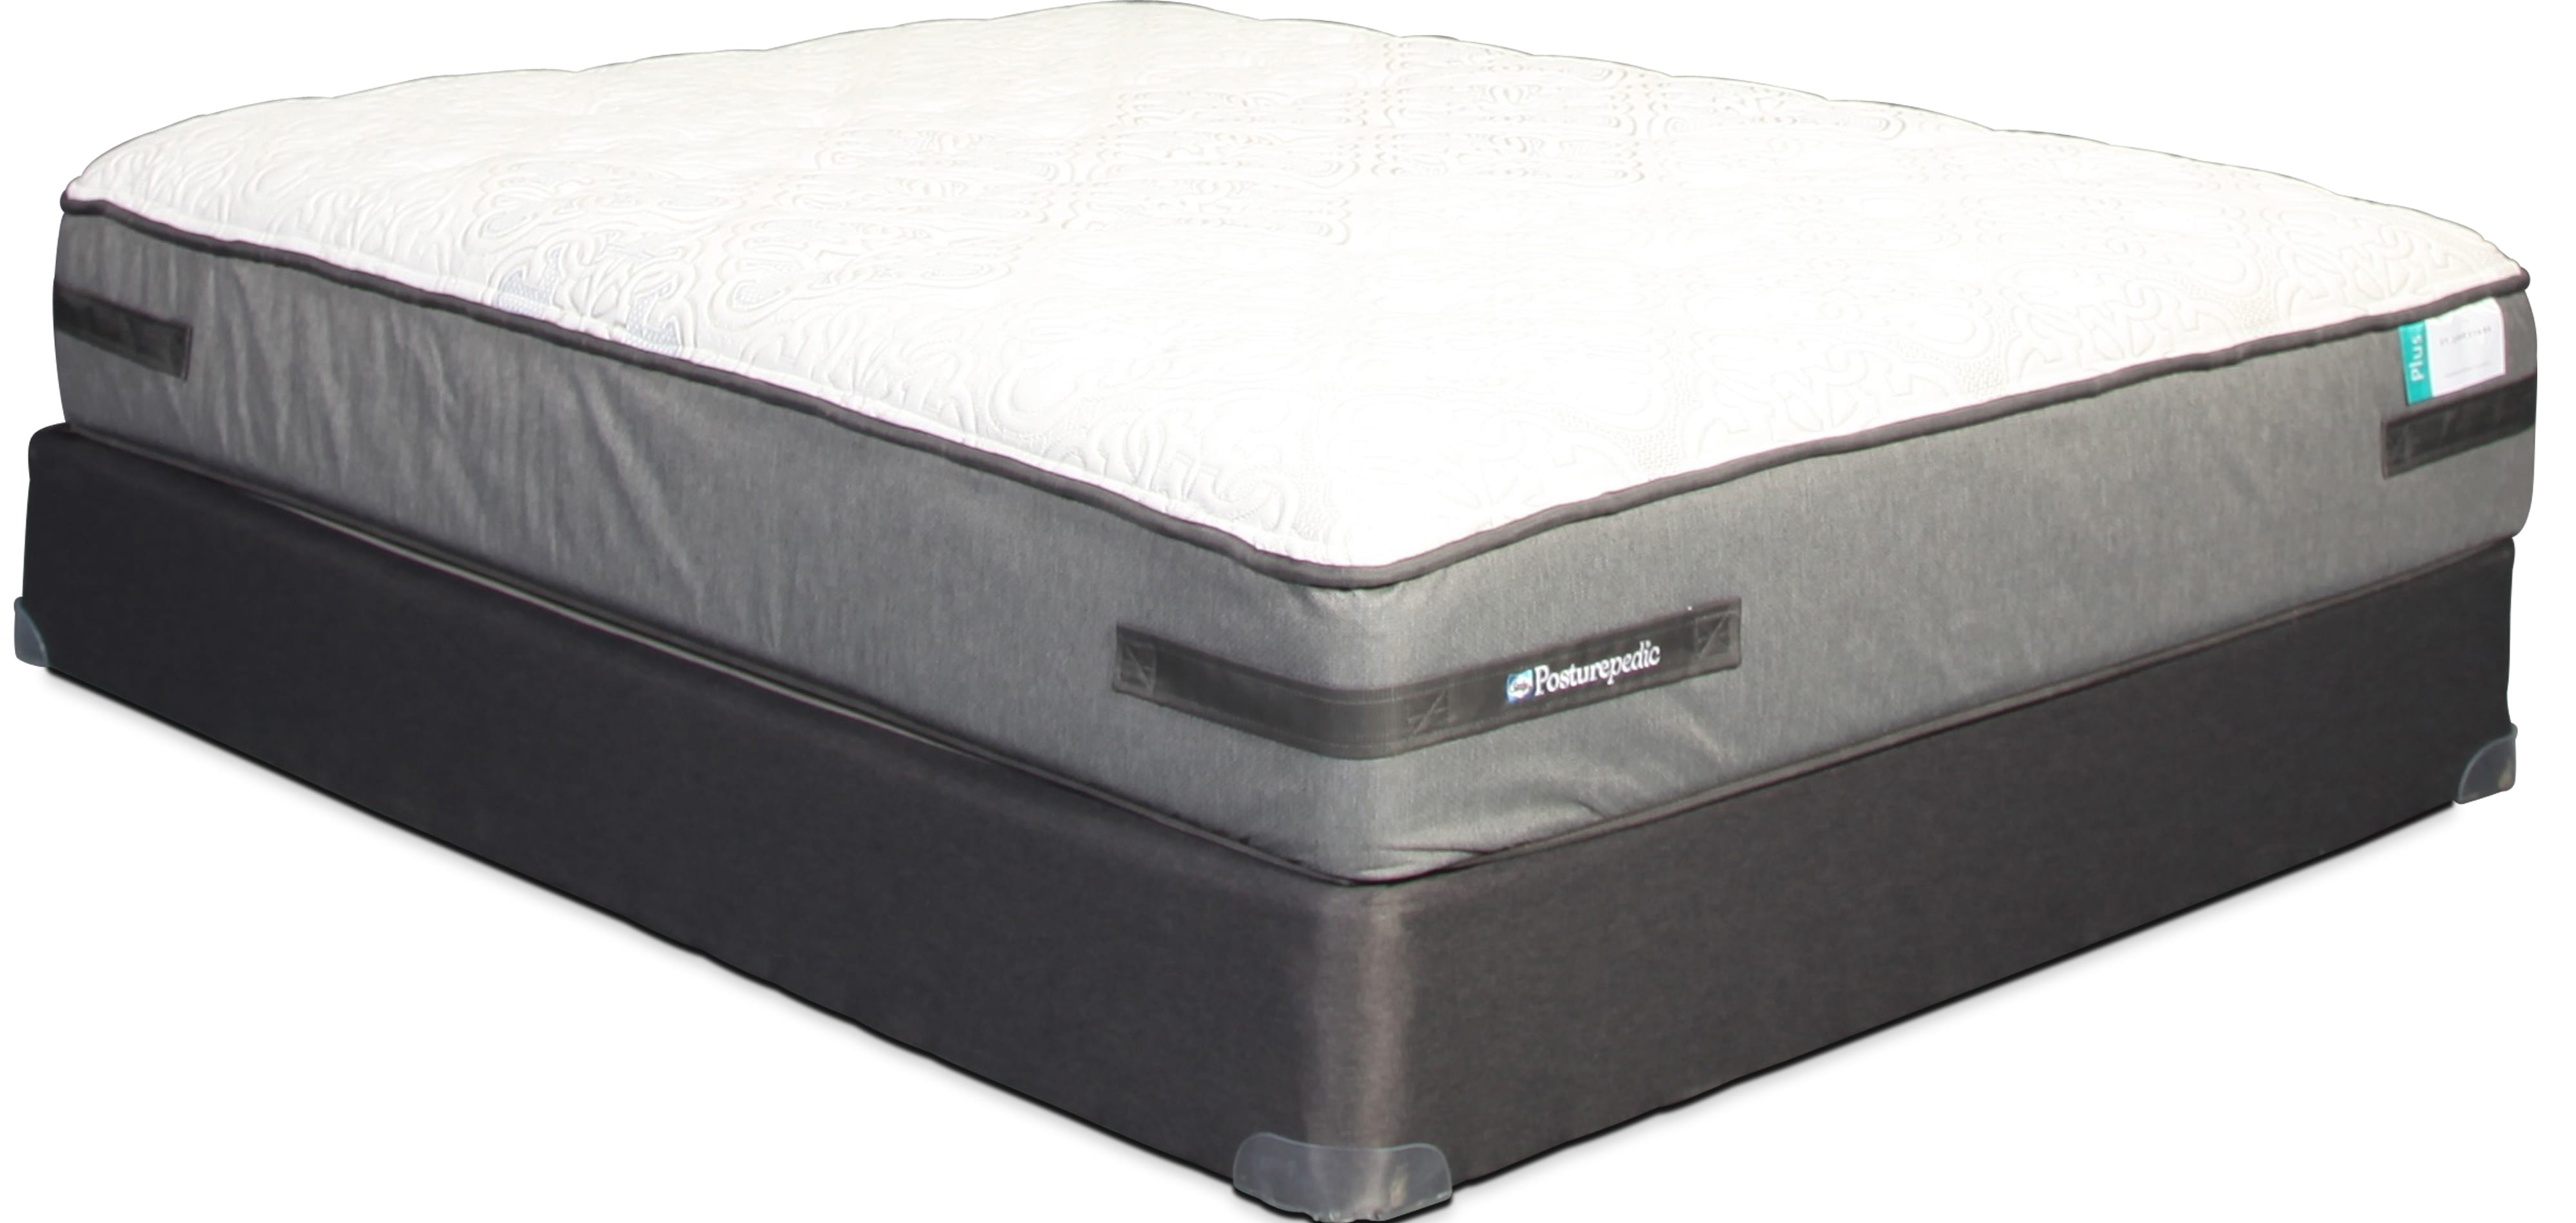 Sealy St. James Park Cushion Firm Twin XL Mattress and Boxspring